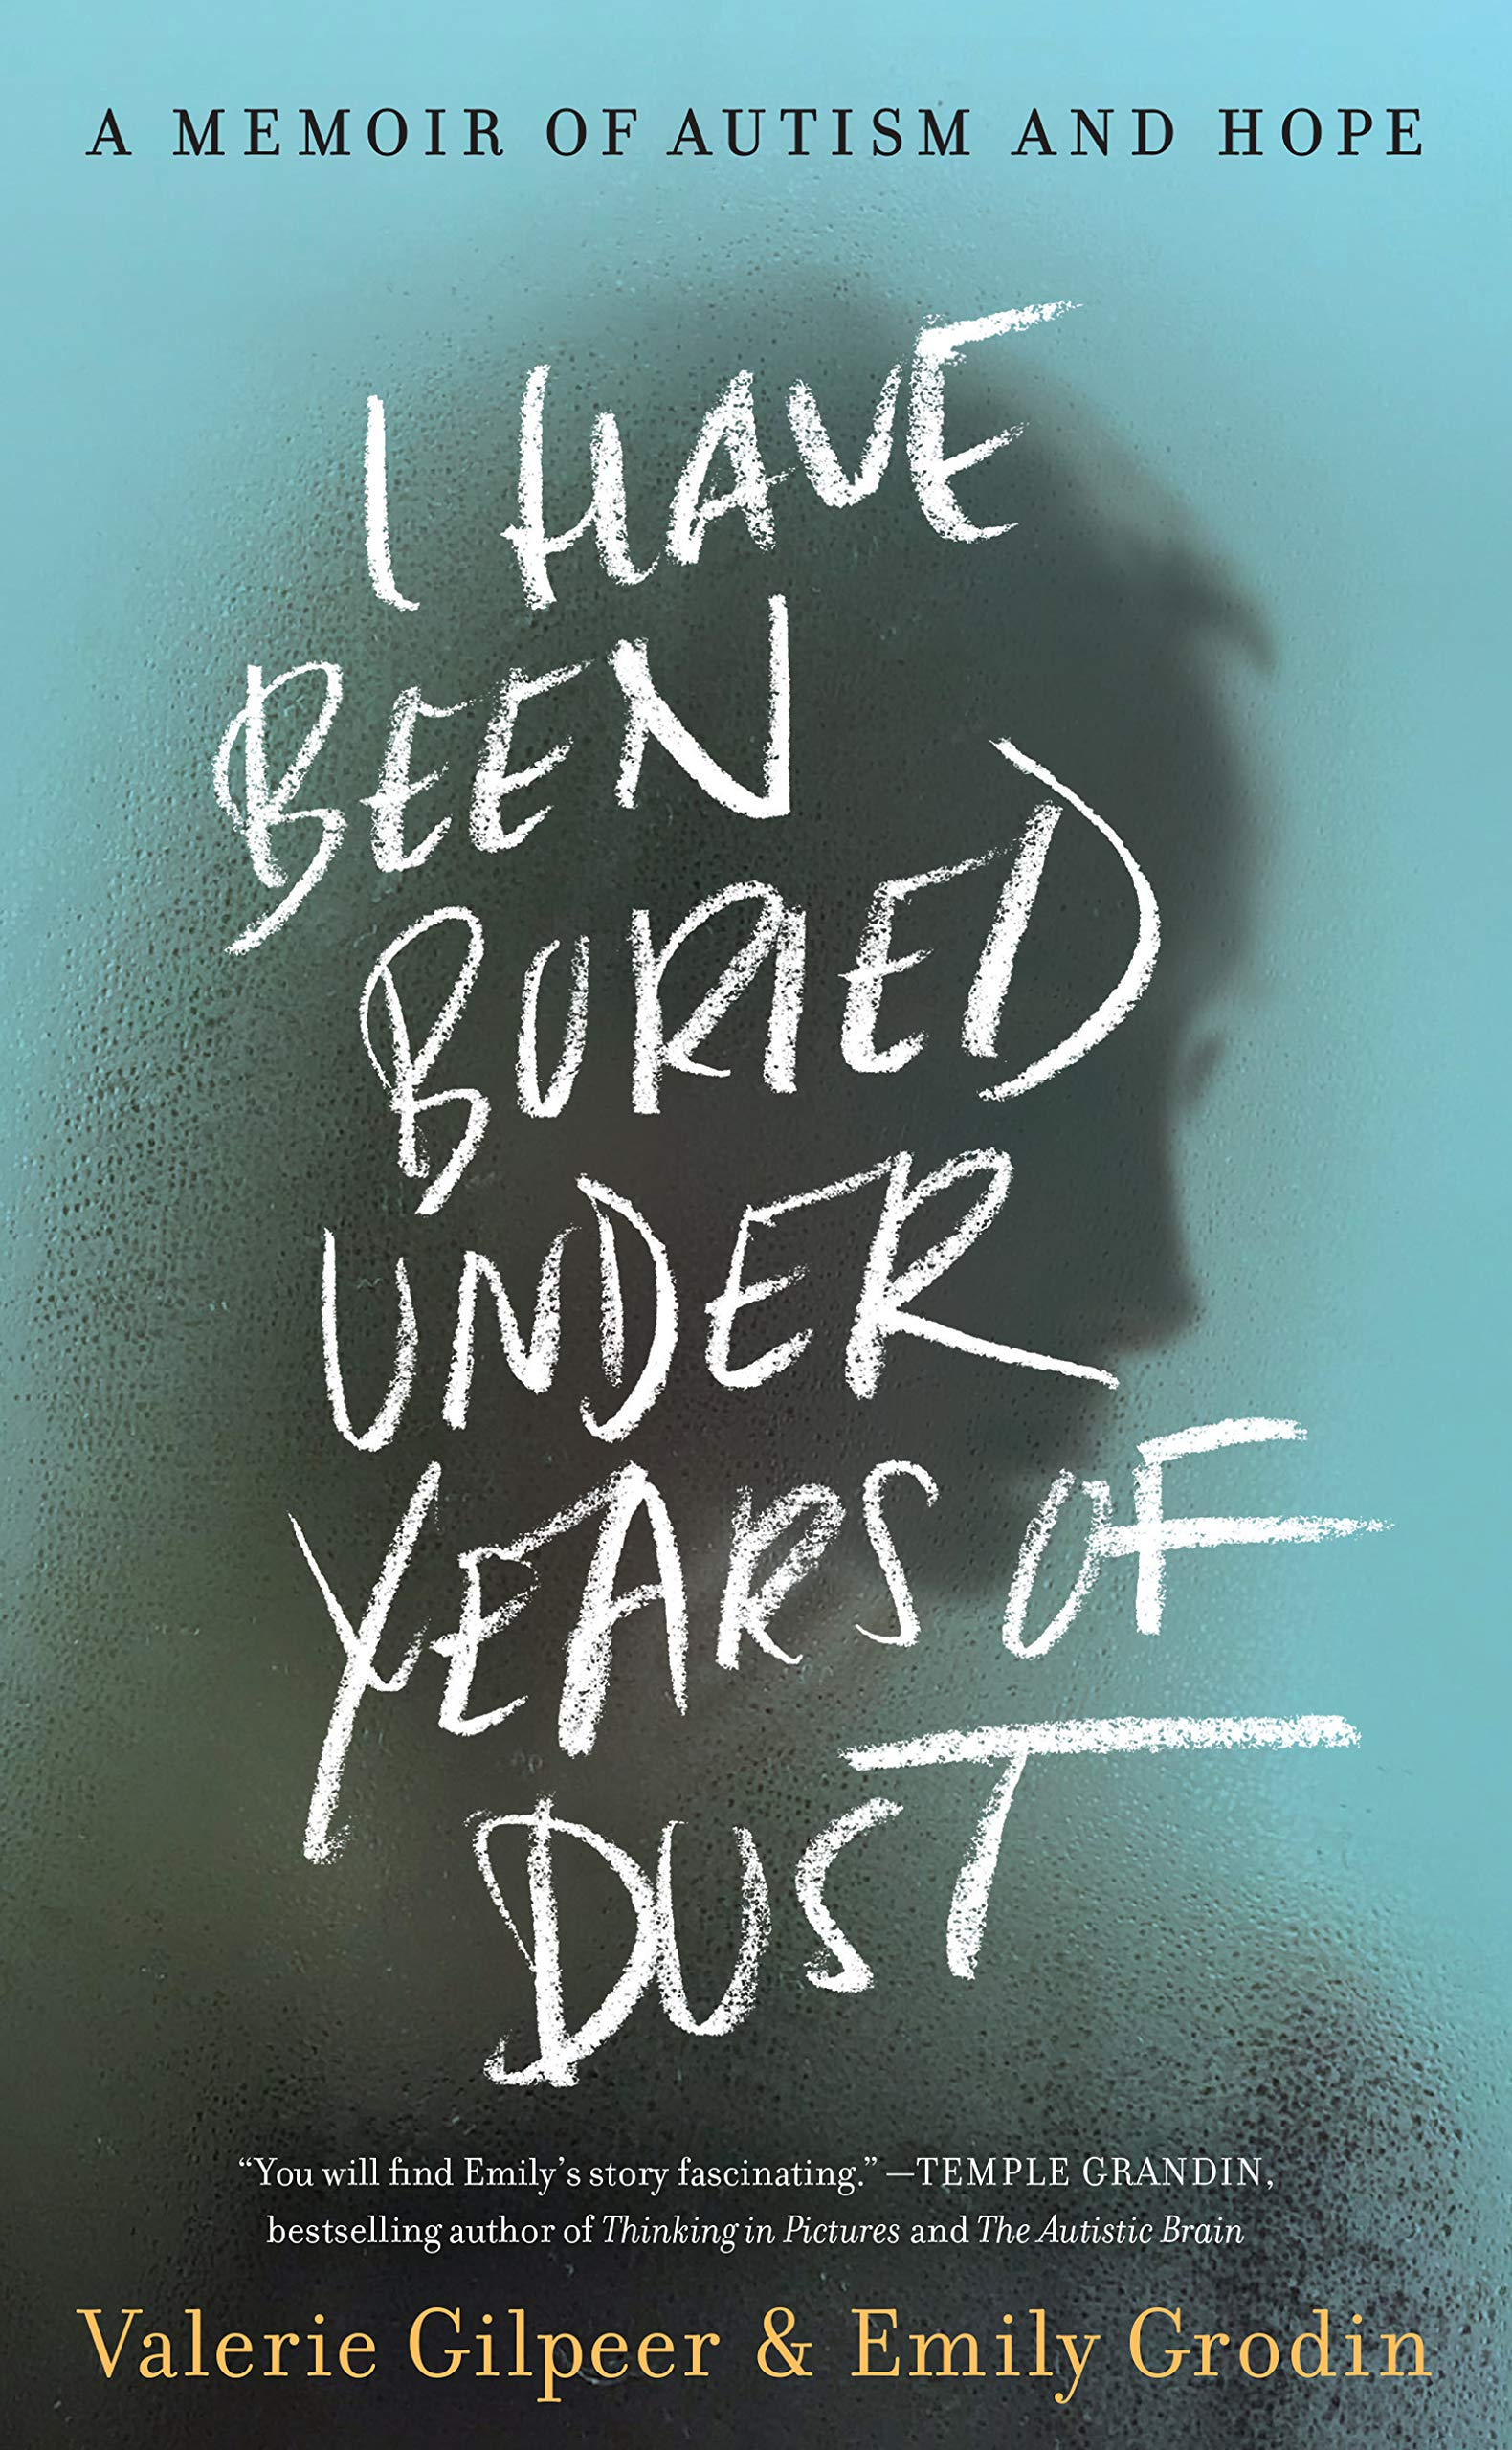 Cover: I have been buried under years of dust